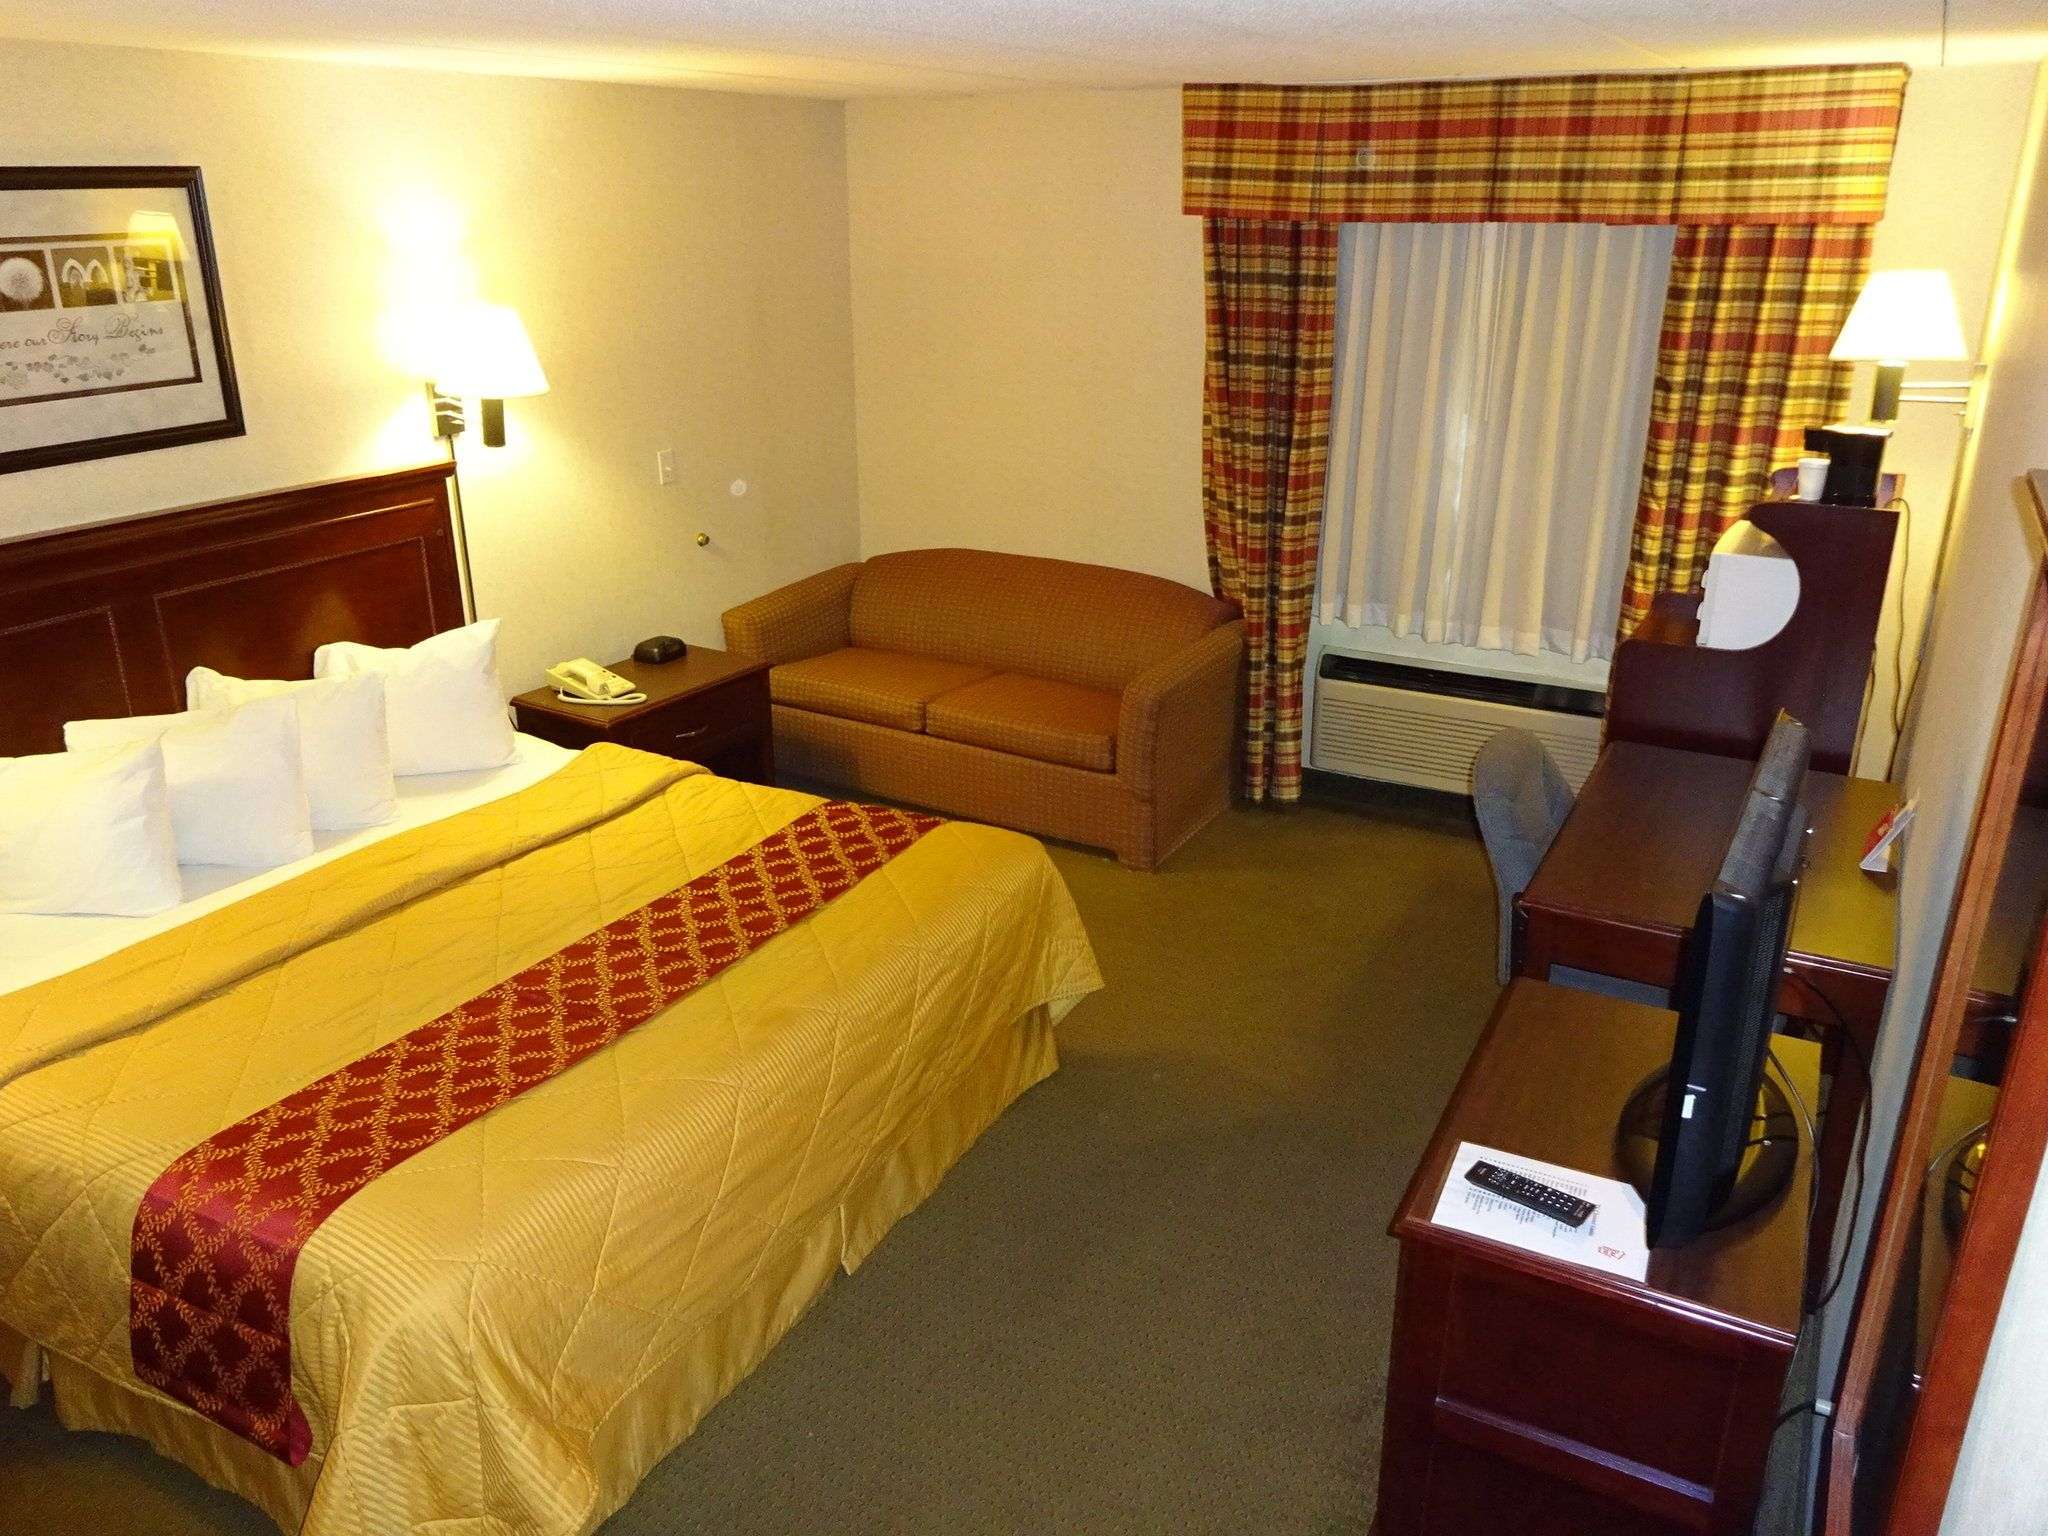 Budget Pet Friendly Hotel In Clearwater Fl 33762 With Images